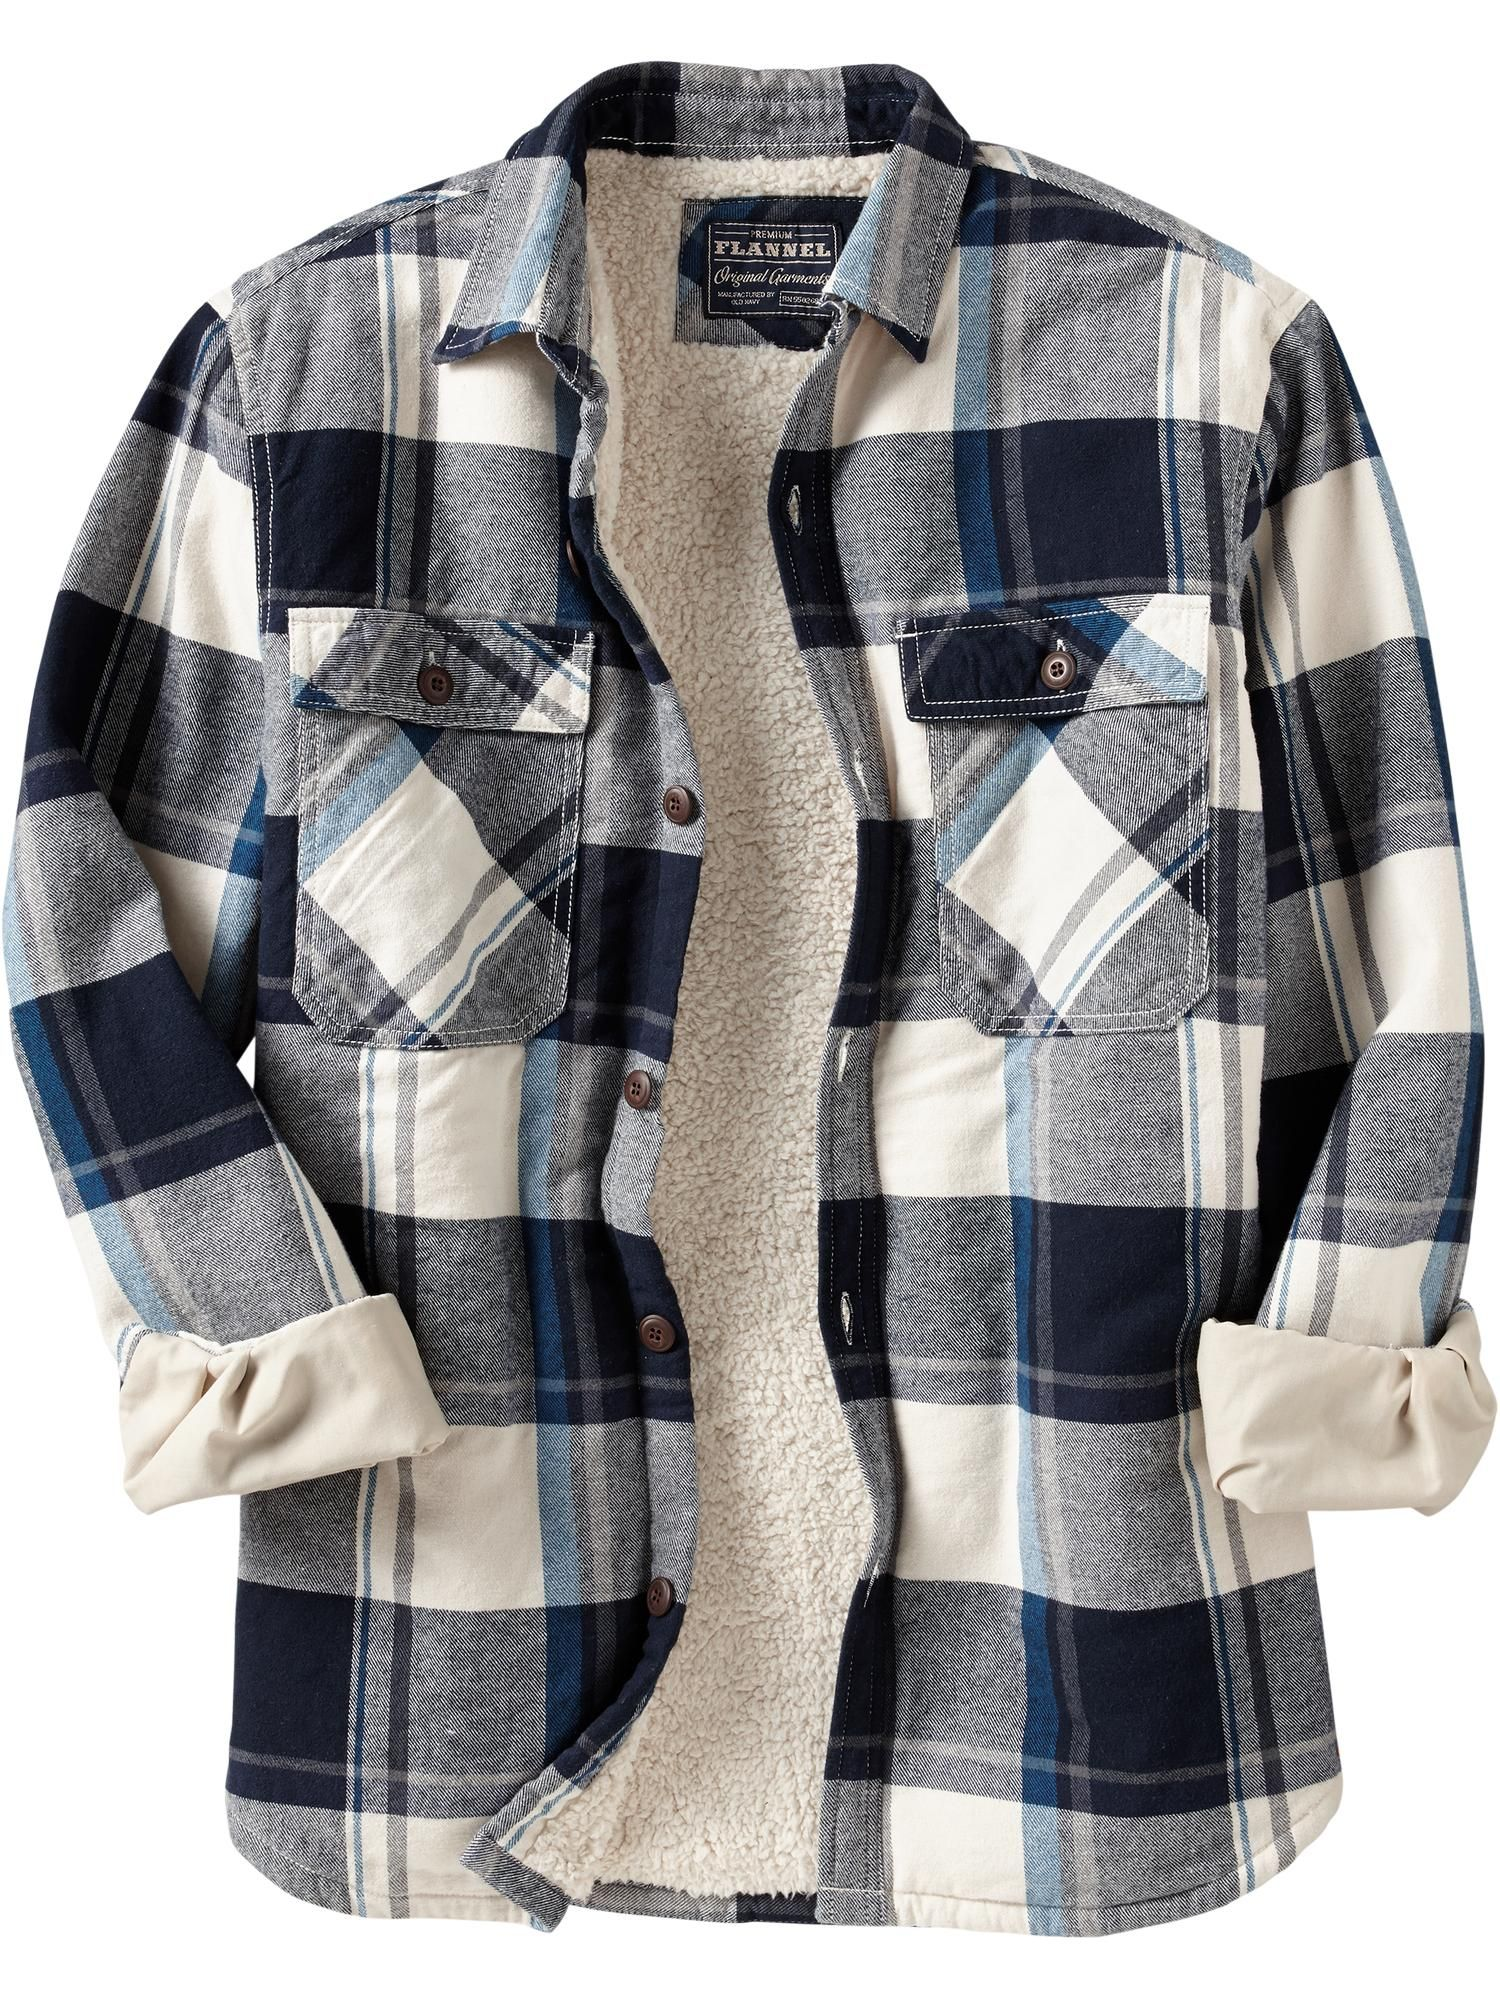 Flannel jacket with wool lining  sherpa lined shirt for dad  Roupa  Pinterest  Dads Clothes and